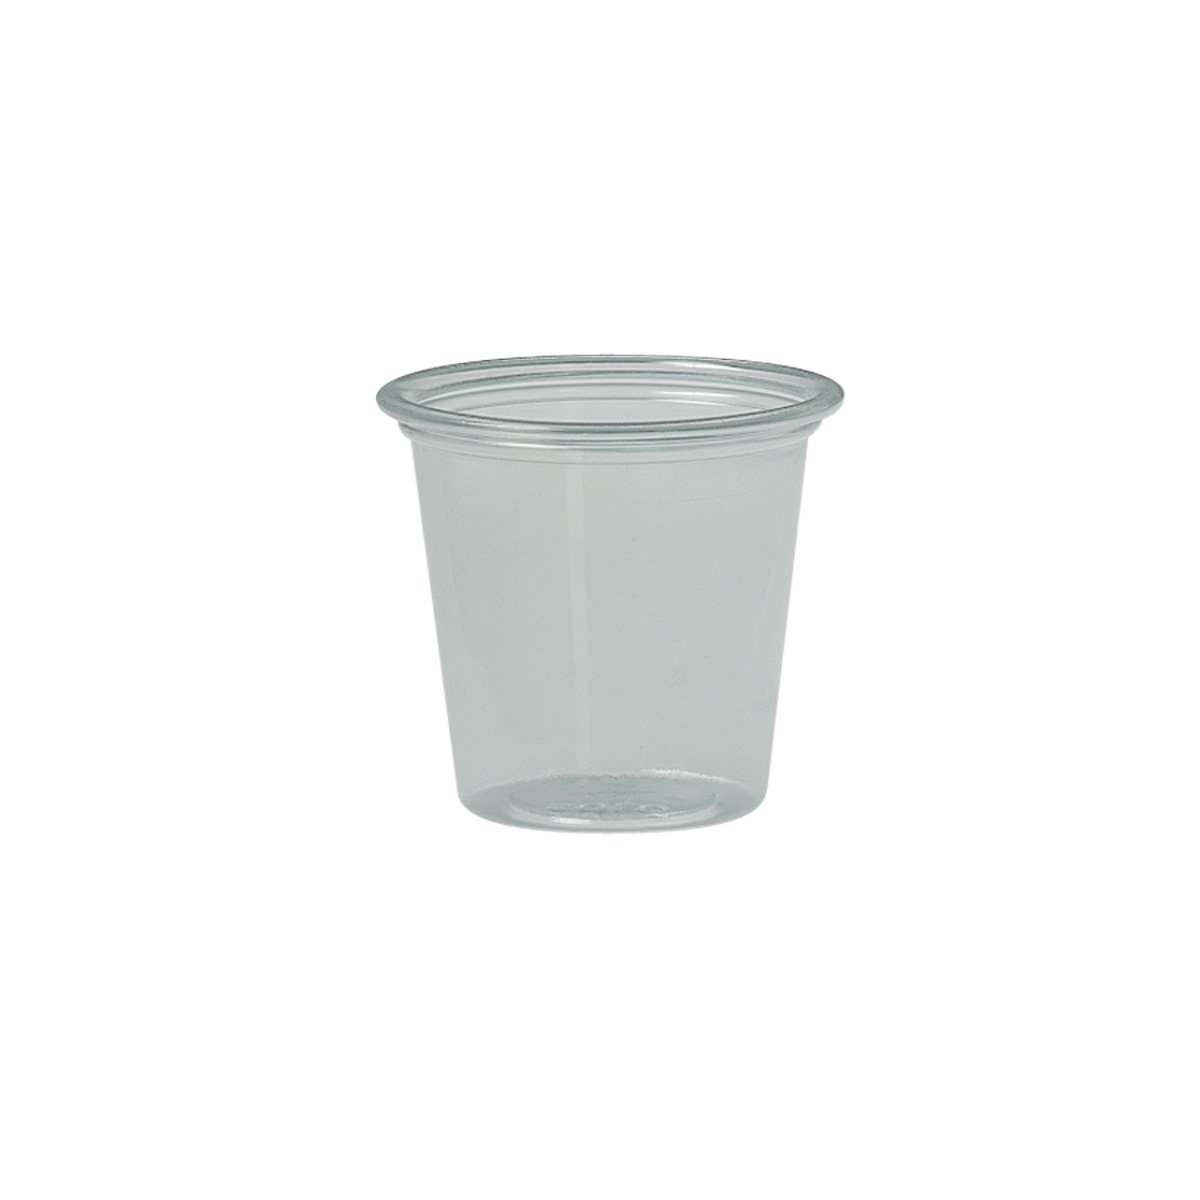 Solo T125-0090 1.25 oz Clear PS Portion Container (Case of 5000) by Solo Foodservice